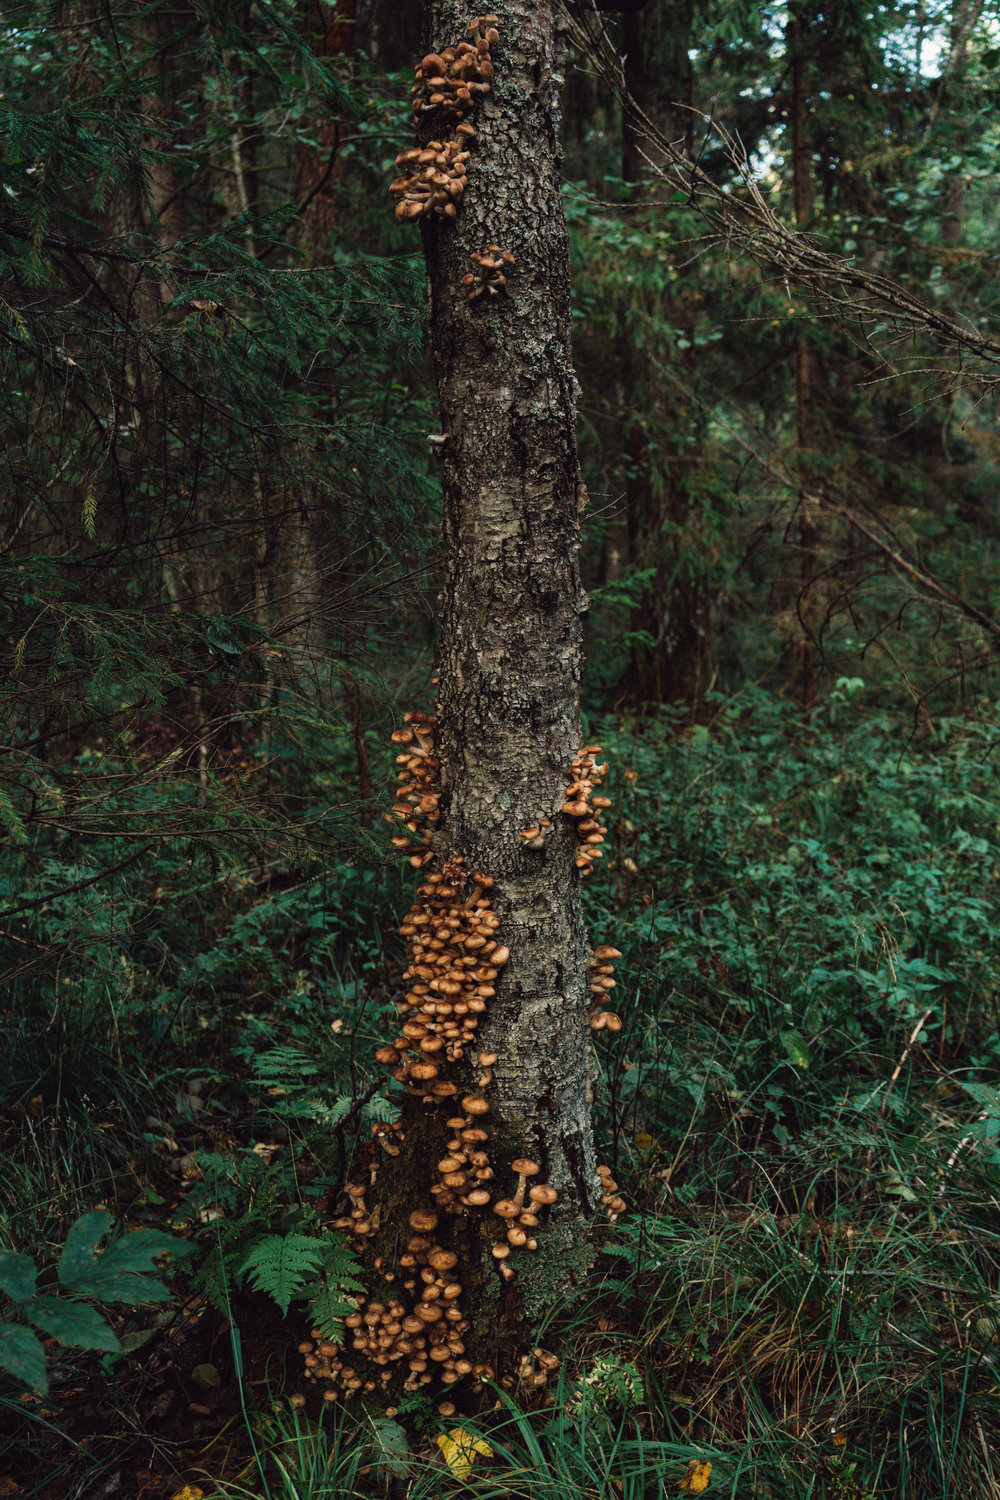 Honey Mushrooms on a decaying birch.